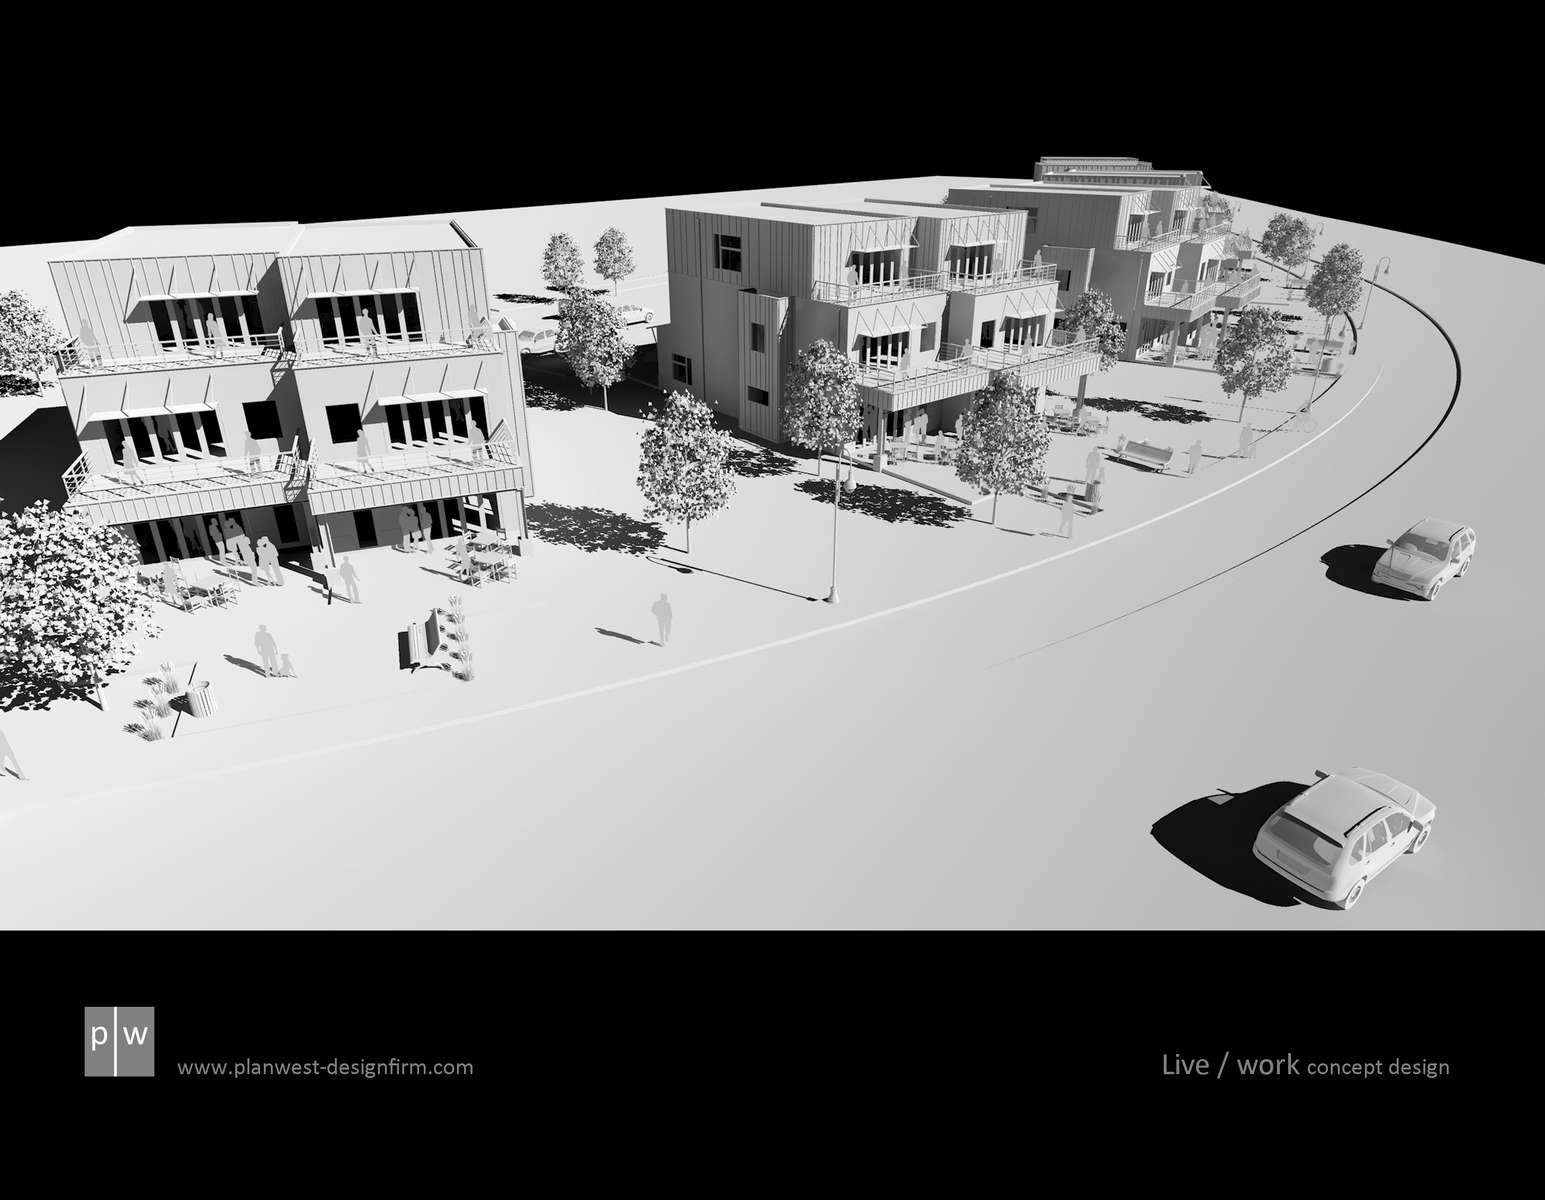 plan-west-design-firm-_-projects-in-process-707